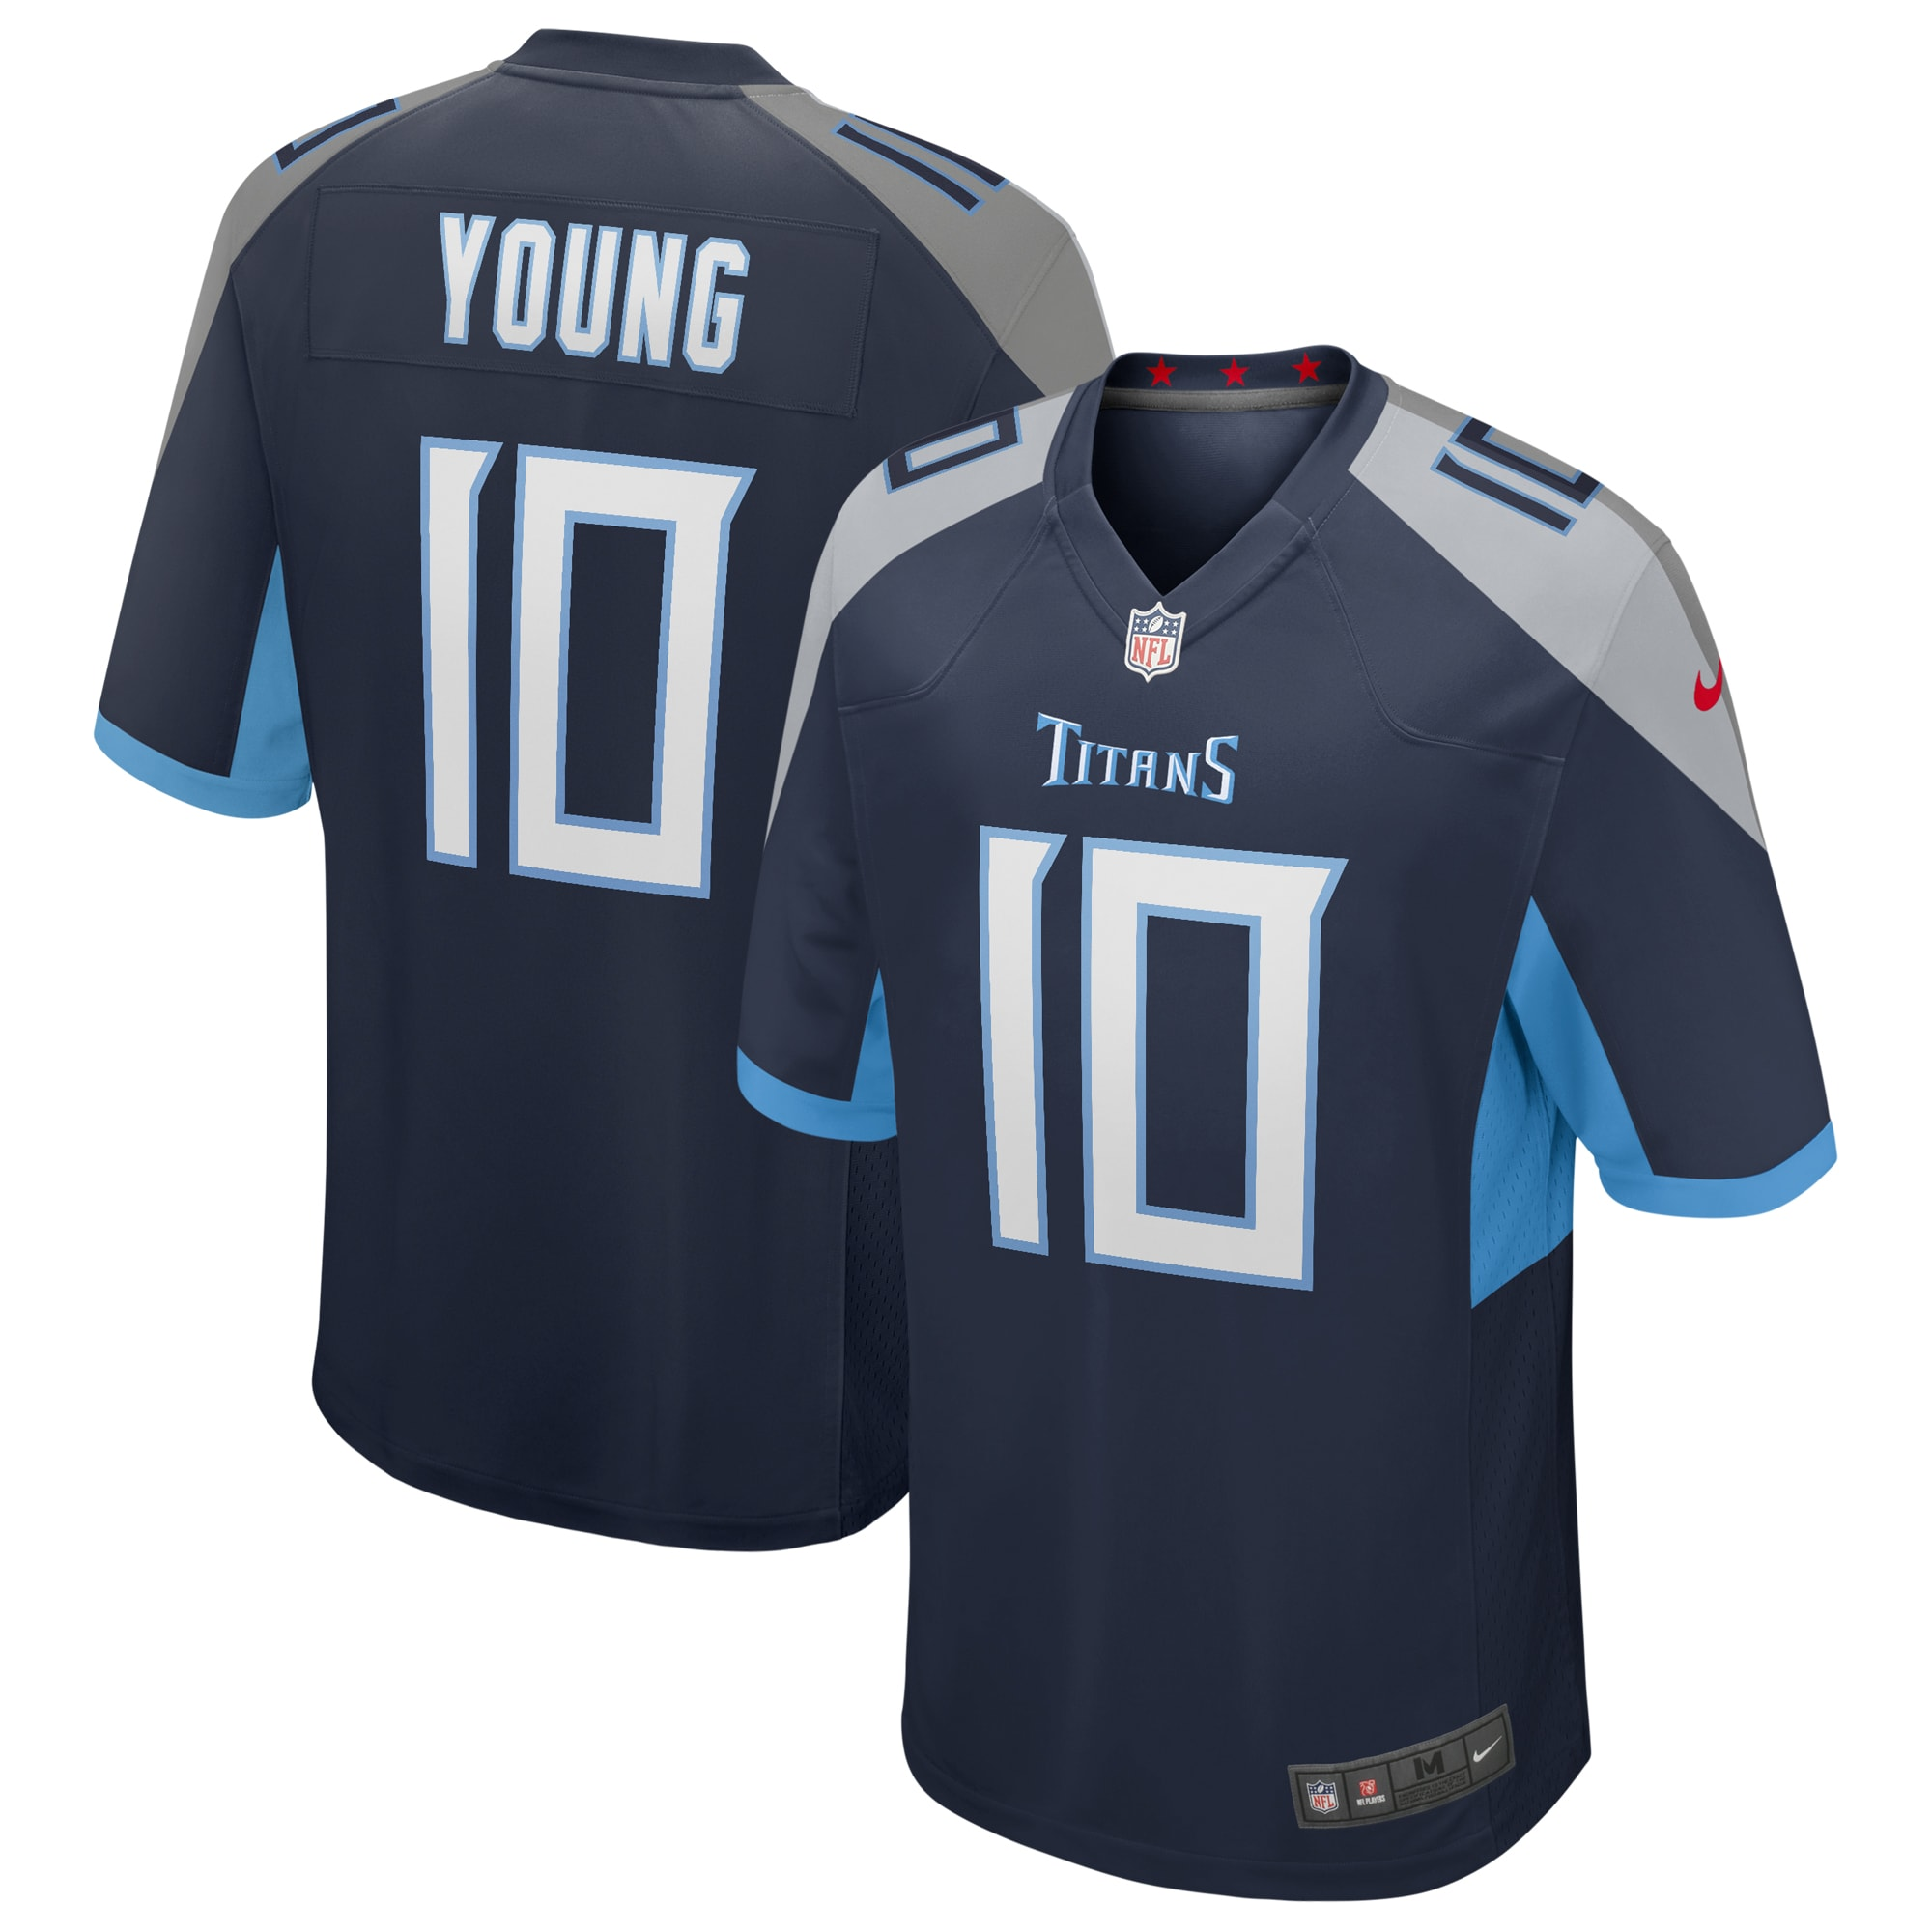 Vince Young Tennessee Titans Nike Game Retired Player Jersey - Navy - Walmart.com